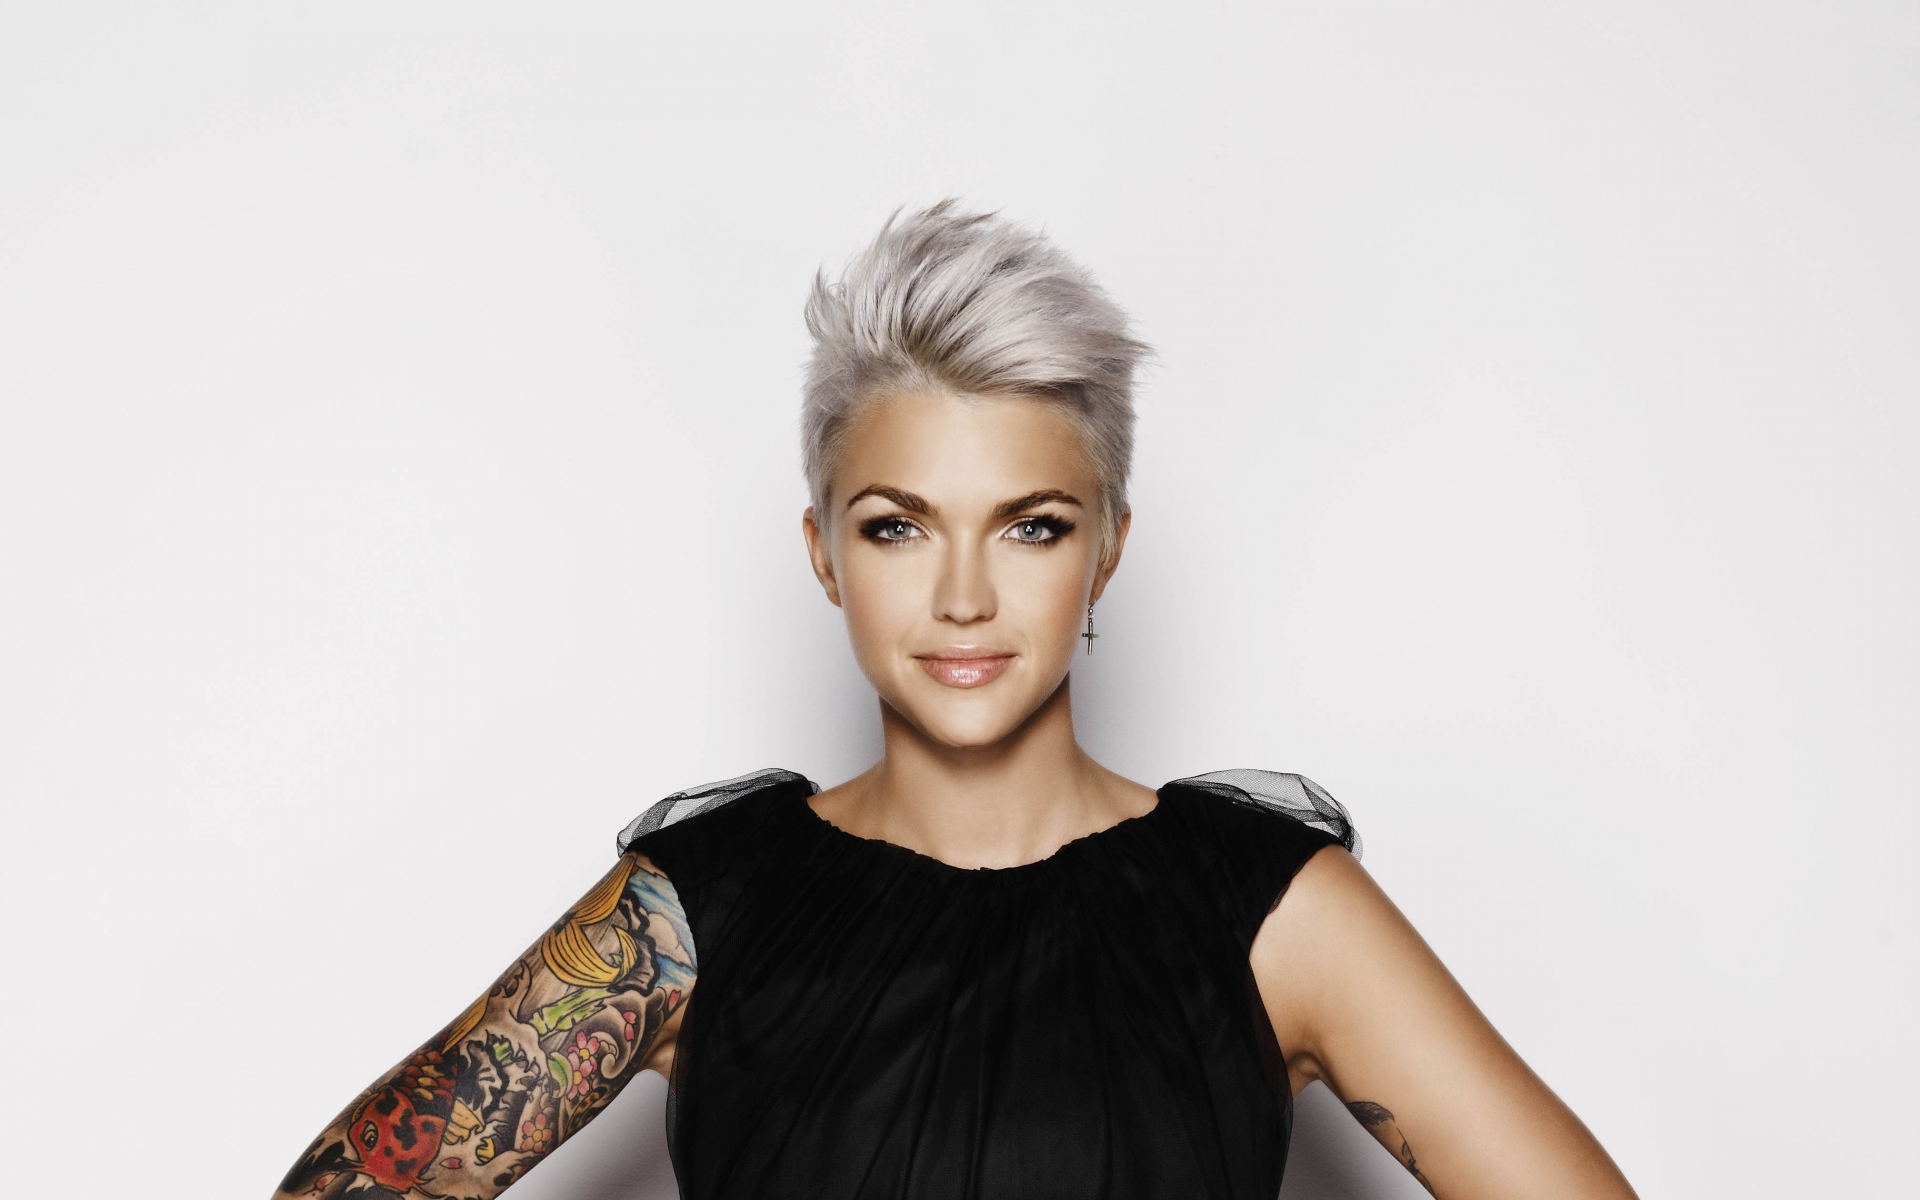 Ruby Rose Wallpapers High Resolution And Quality Download